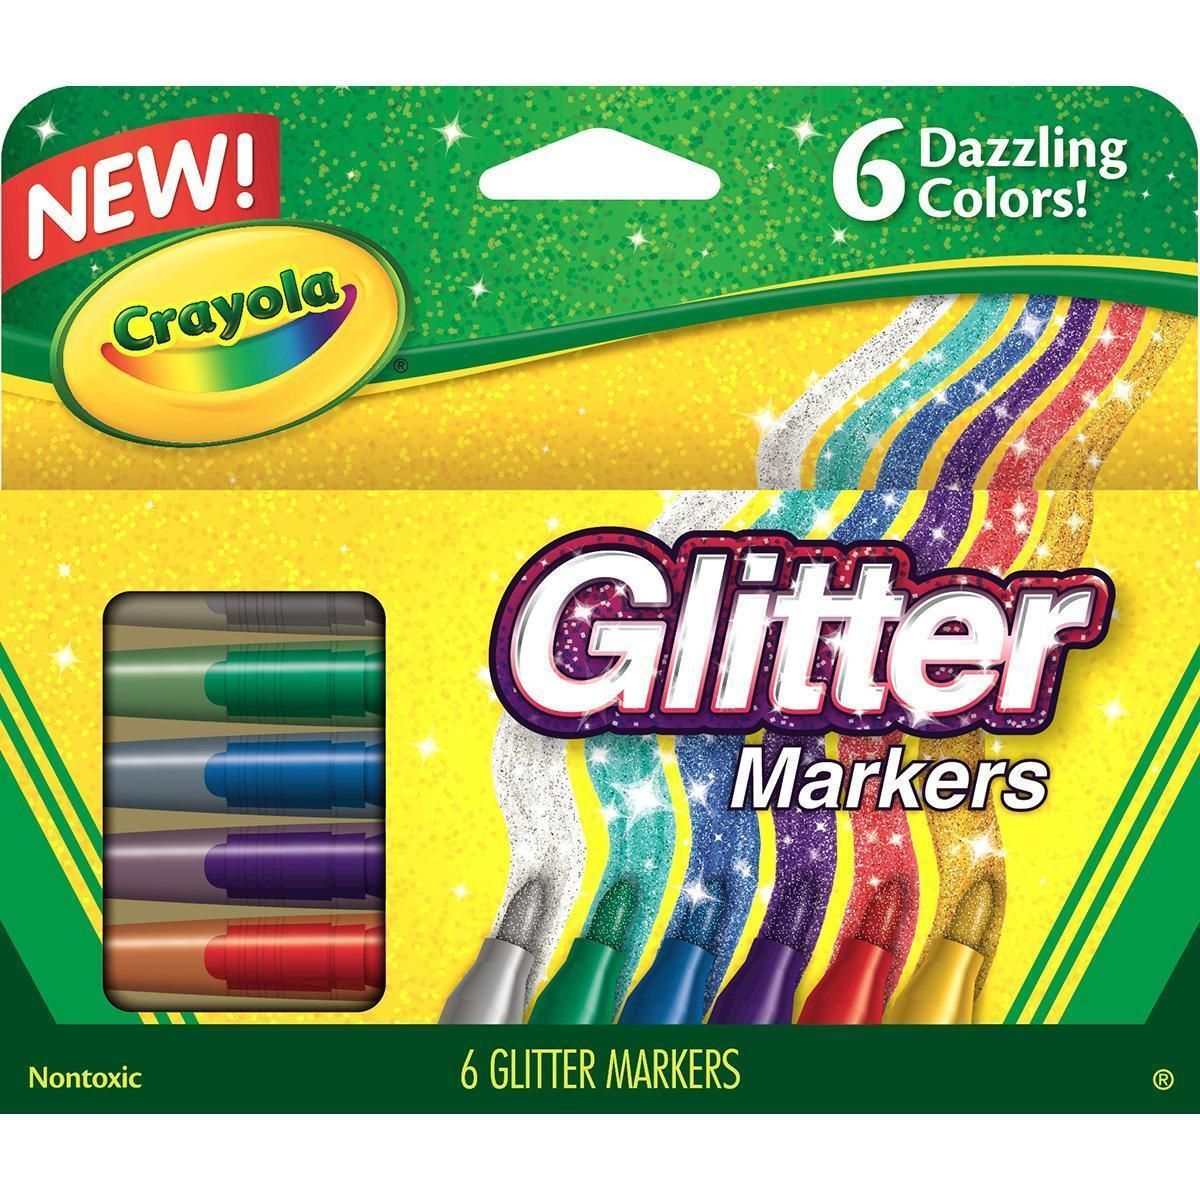 Crayola; Ultra-Clean; Stamper Markers; Art Tools; 10 ct Bold Washable Colors; Emoticons Markers; Bright